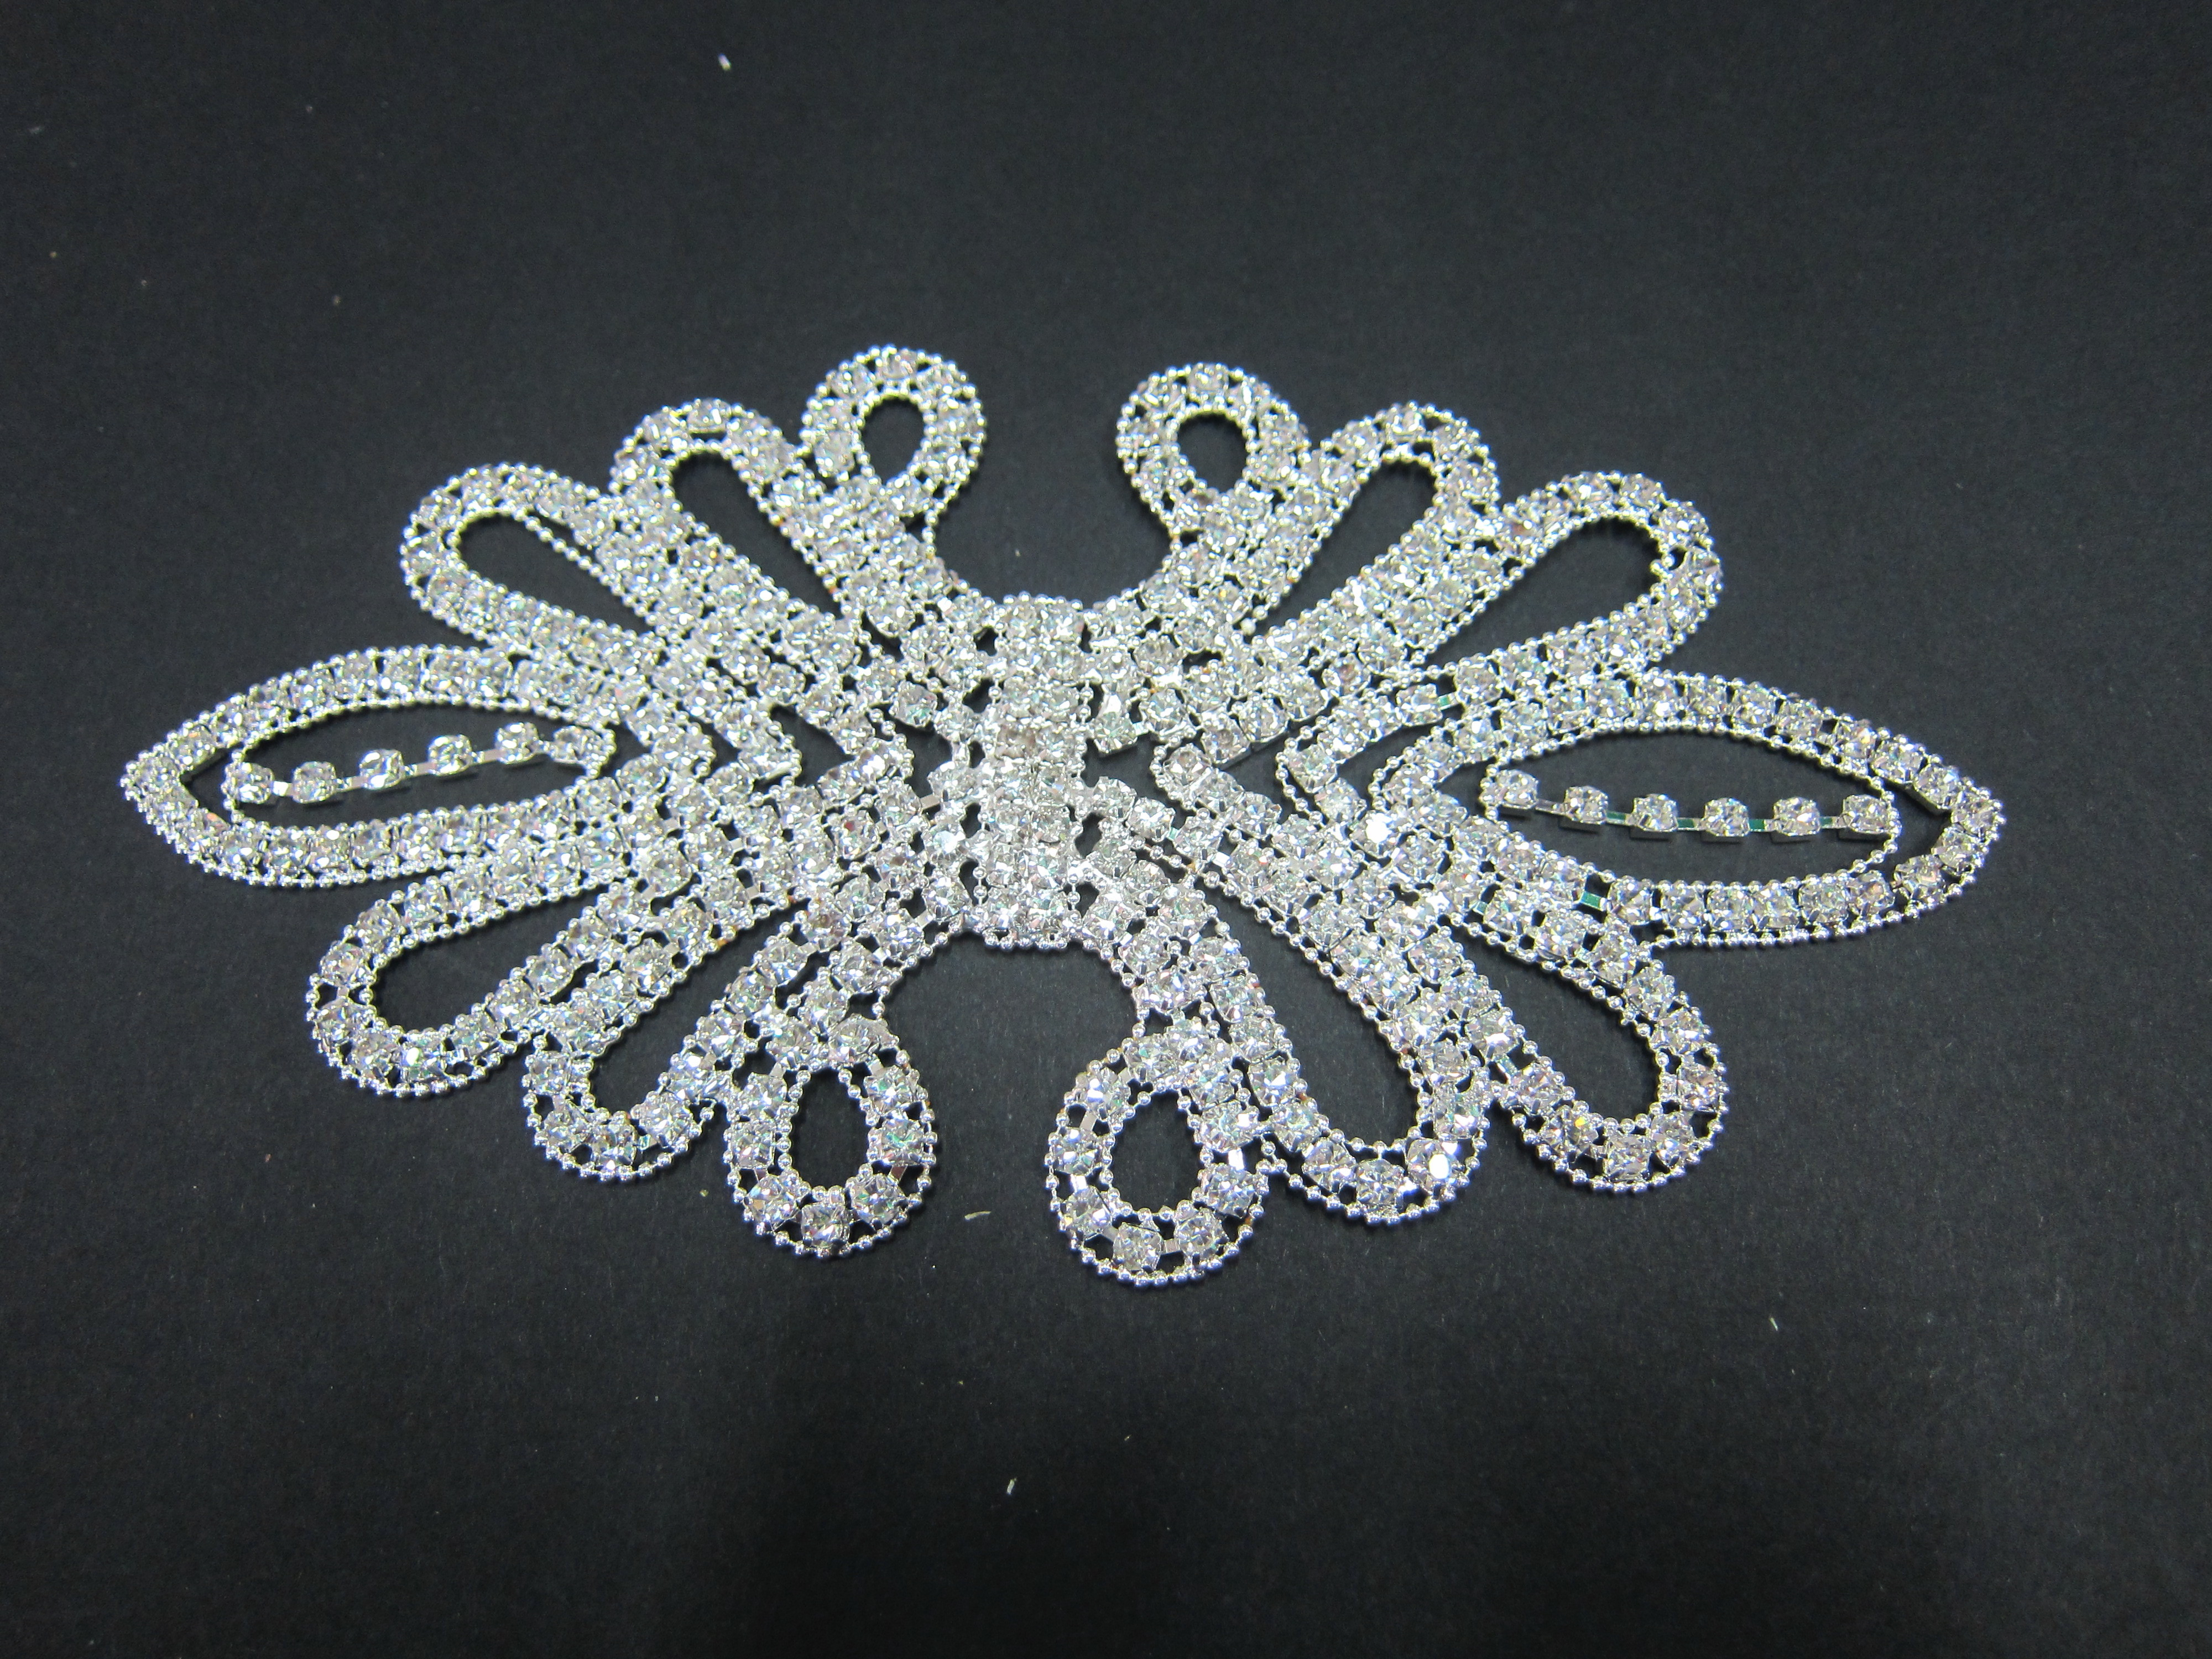 C10-01 Rhinestone Applique